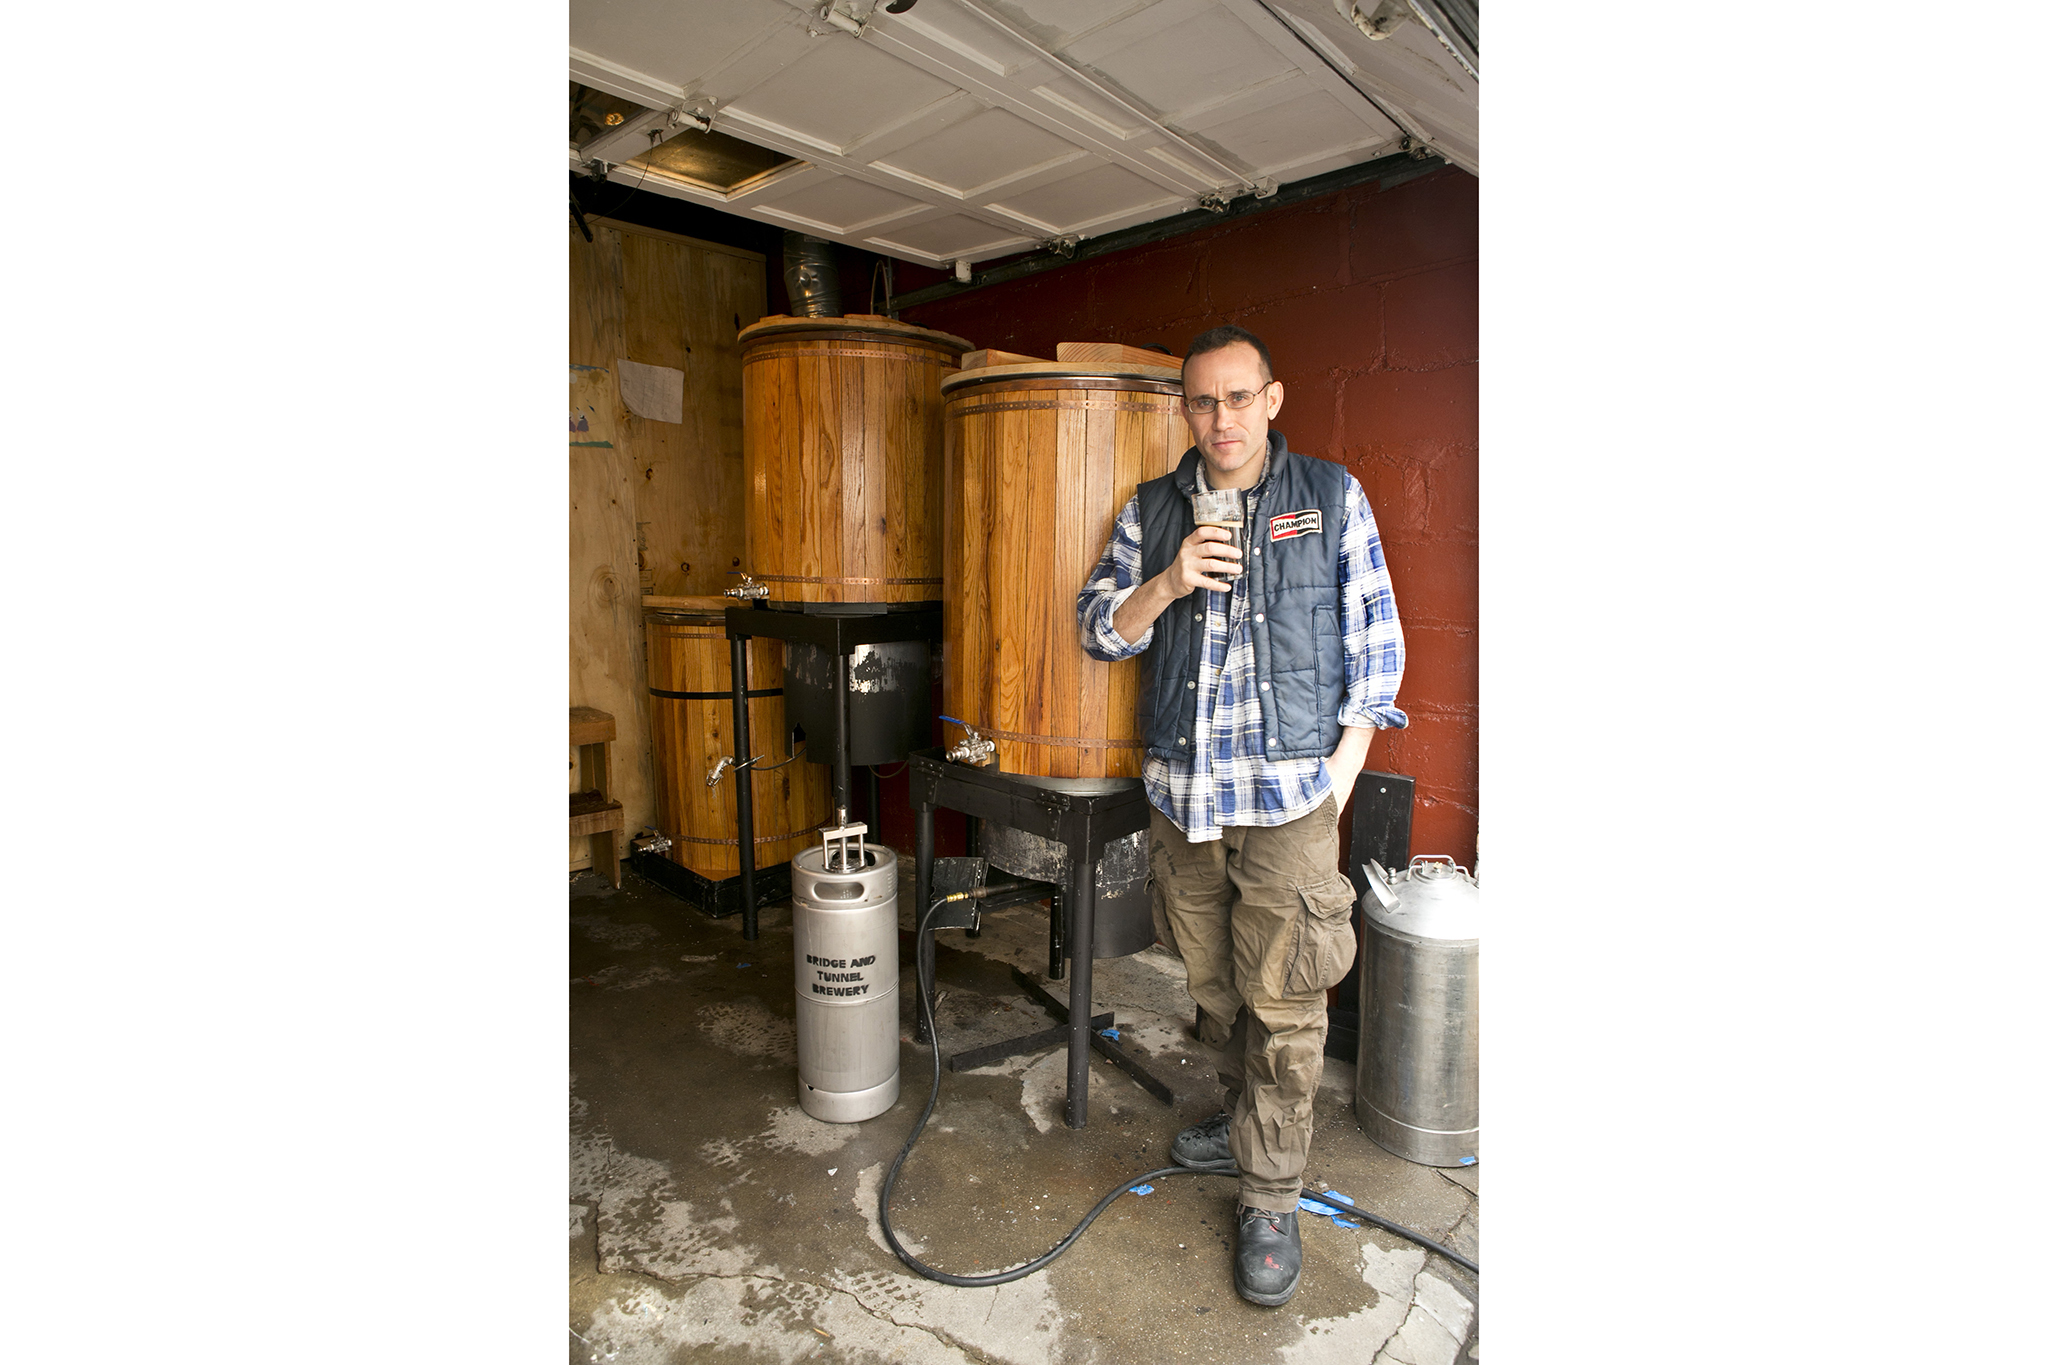 The homegrown microbrewery: Bridge and Tunnel Brewery